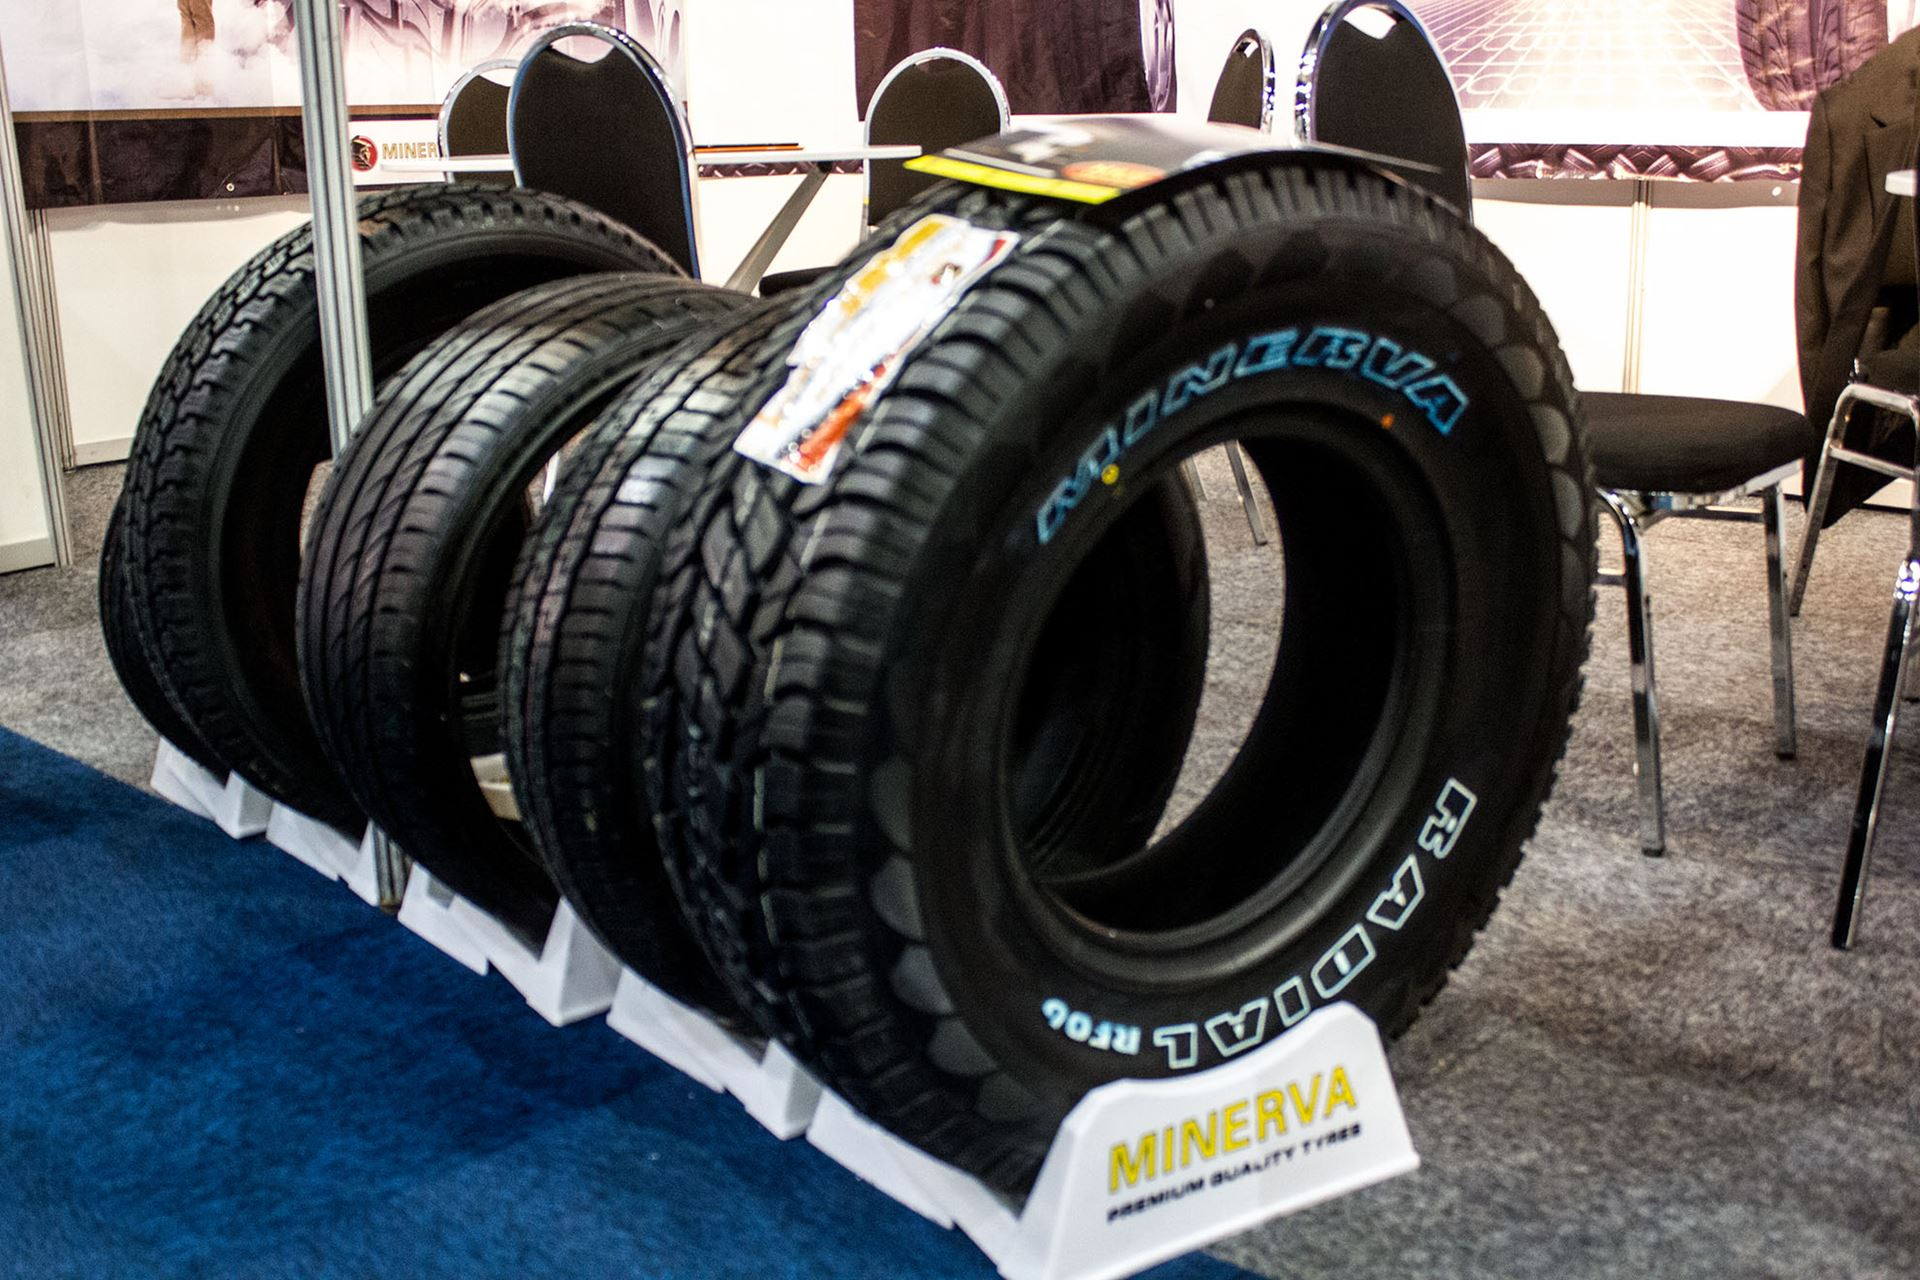 Tyre Expo South Africa 2014 Photographs